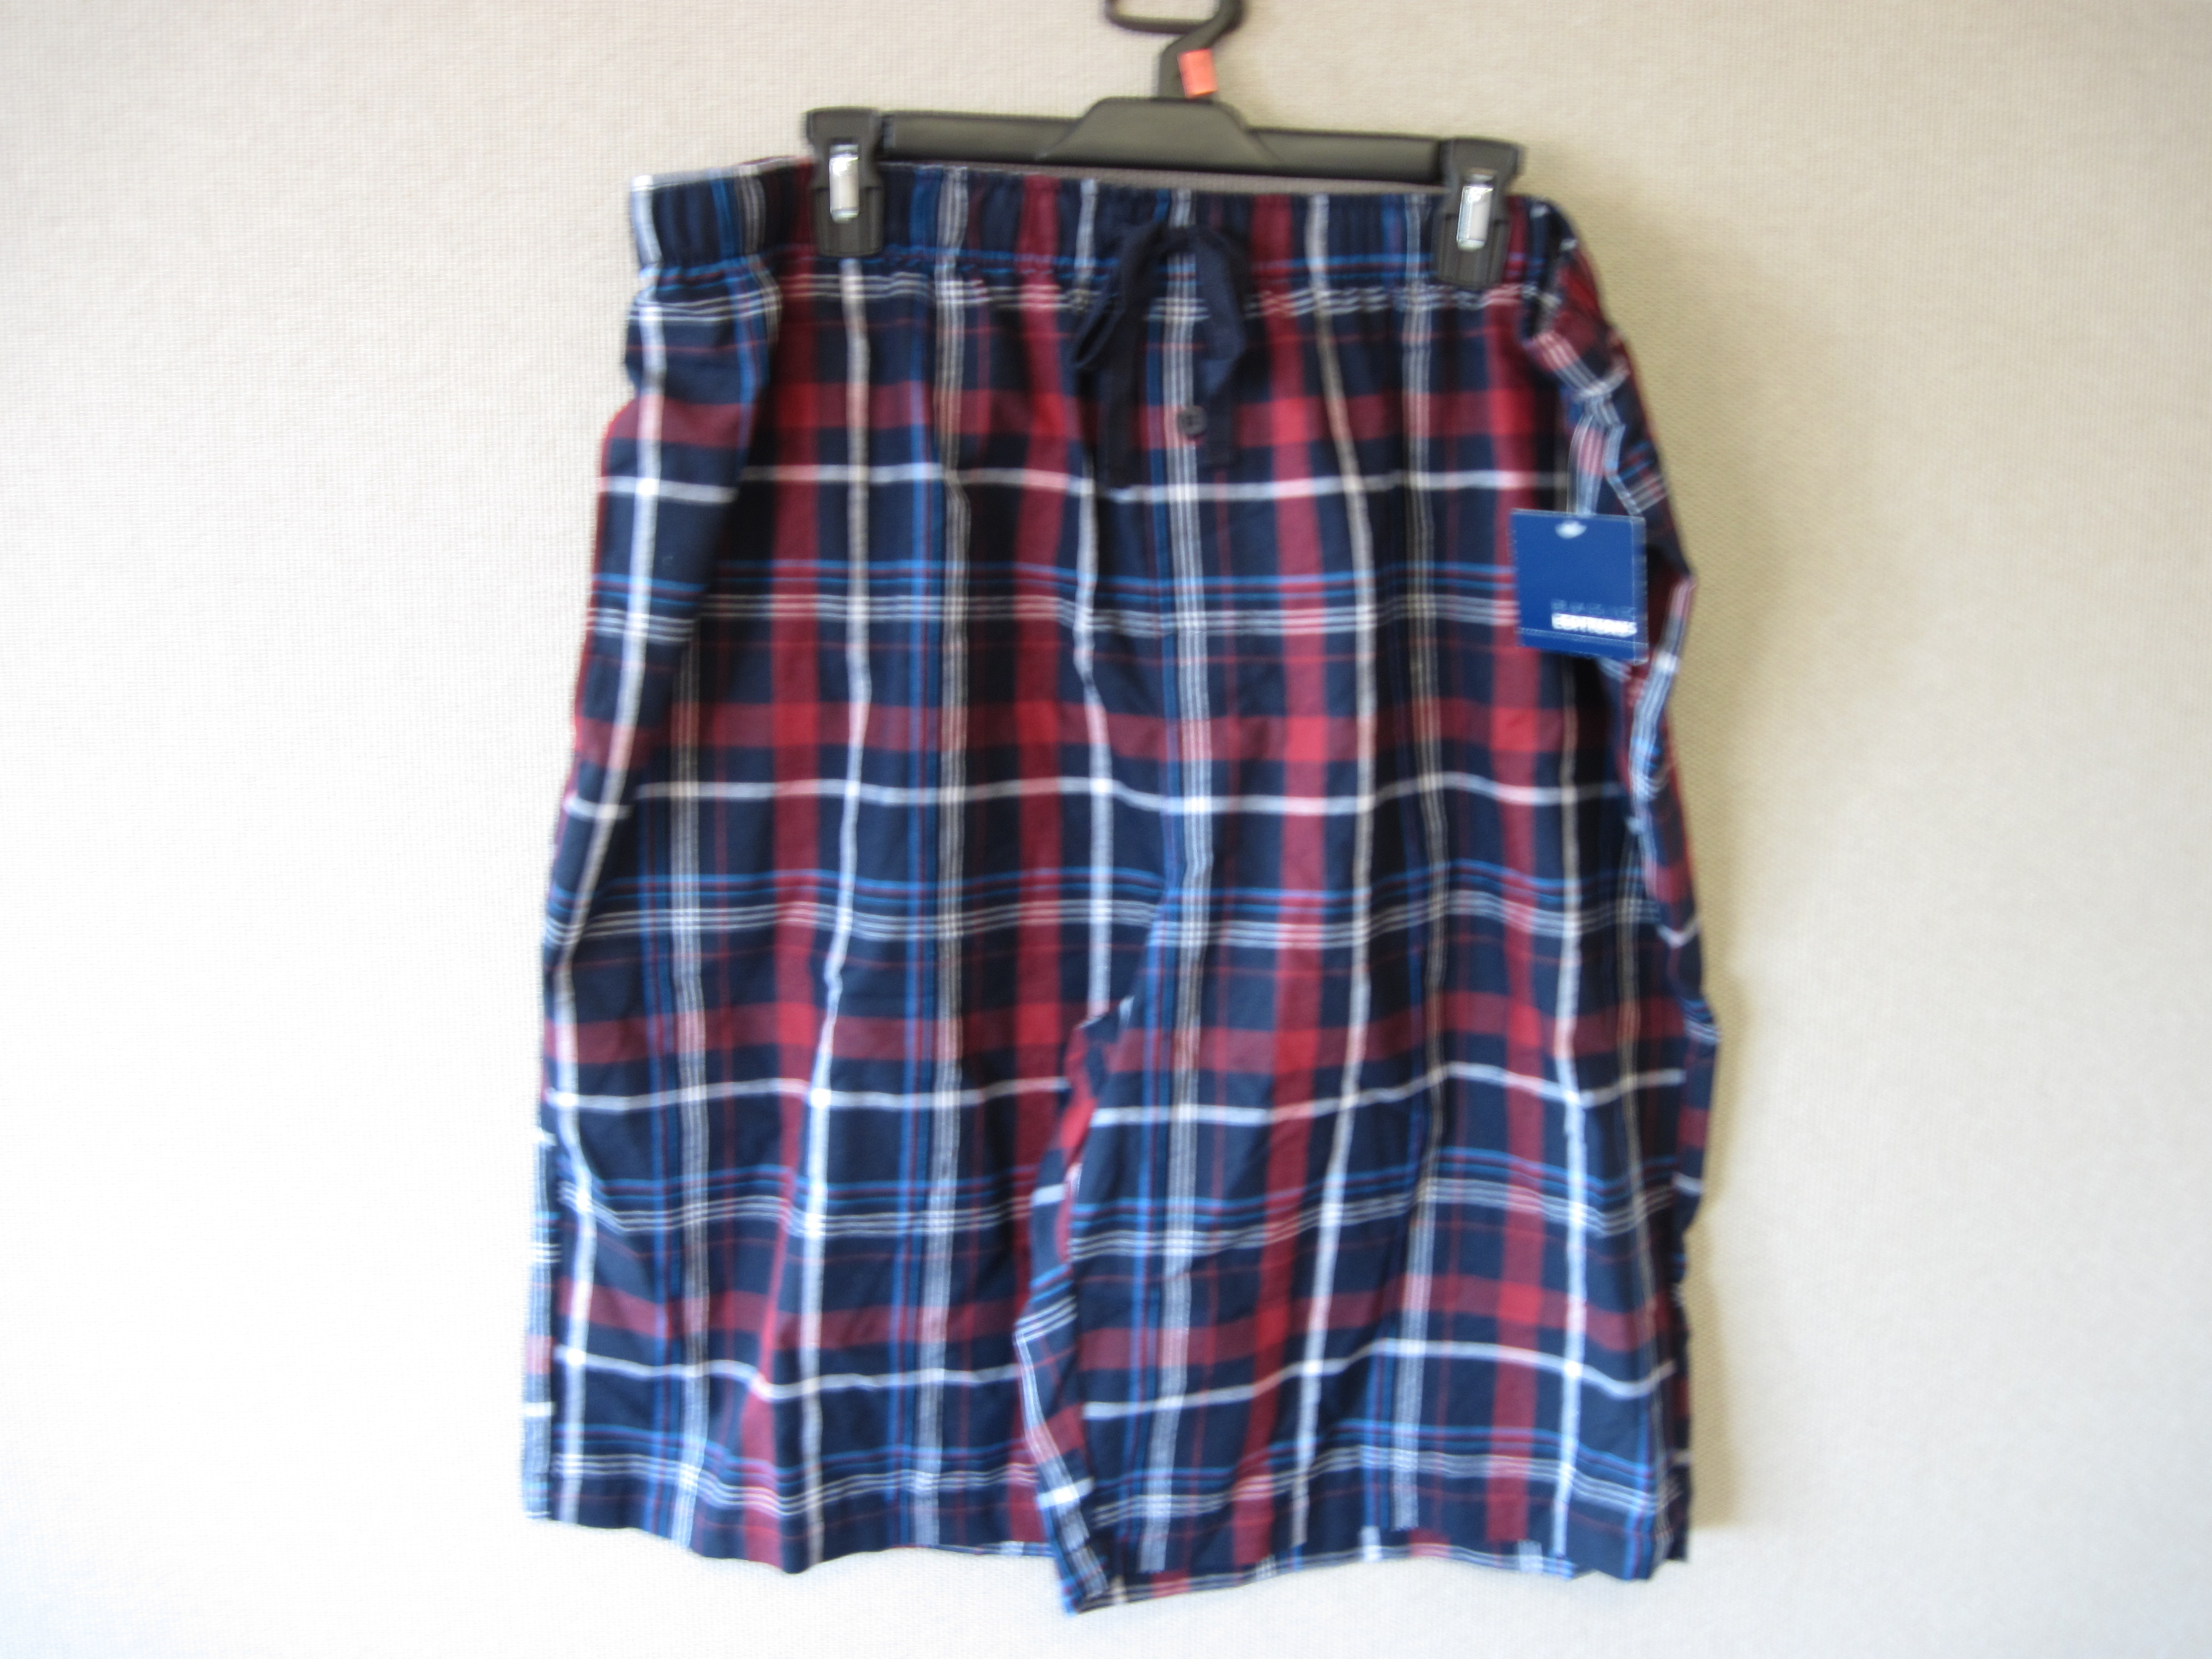 Basic Editions Sz XL Sleep Shorts (plaid, reds,blues & black)